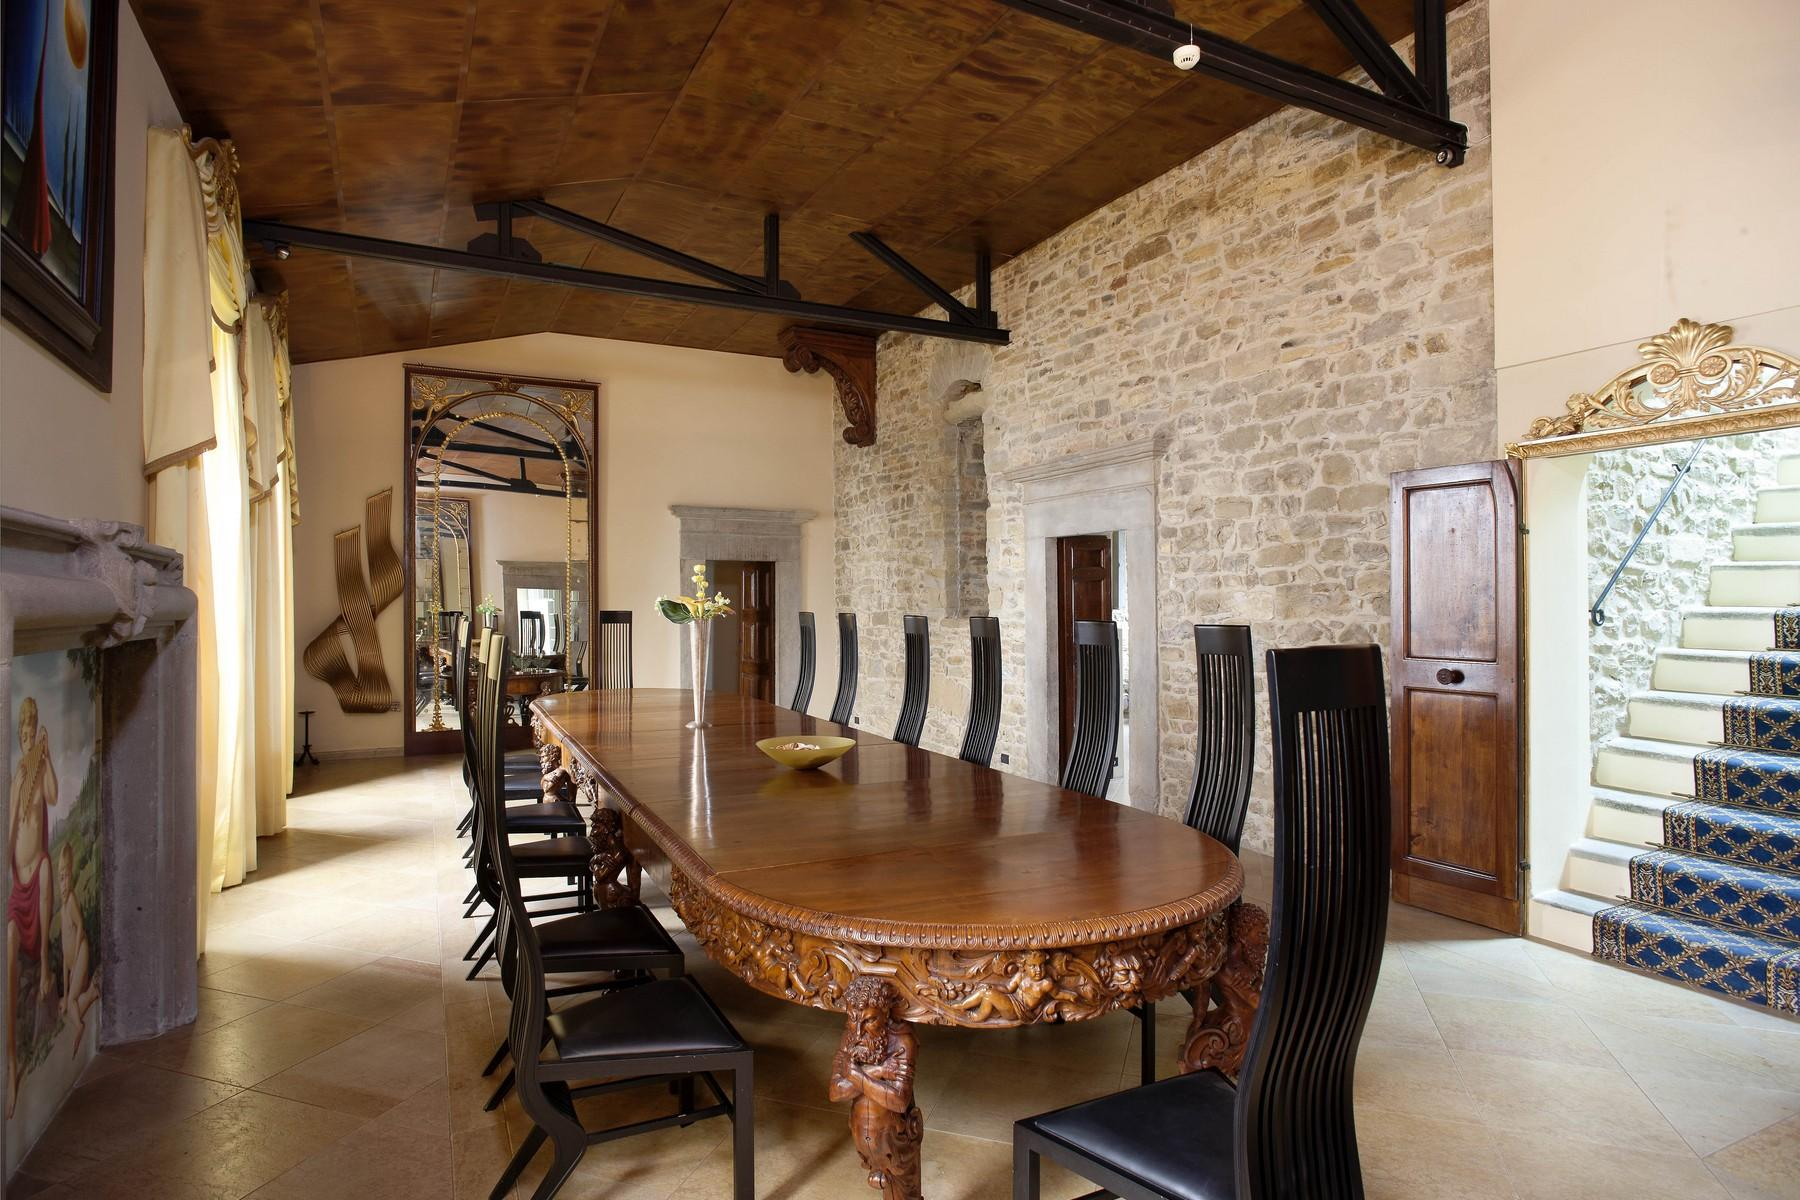 Exclusive villa in umbrian countryside - 5